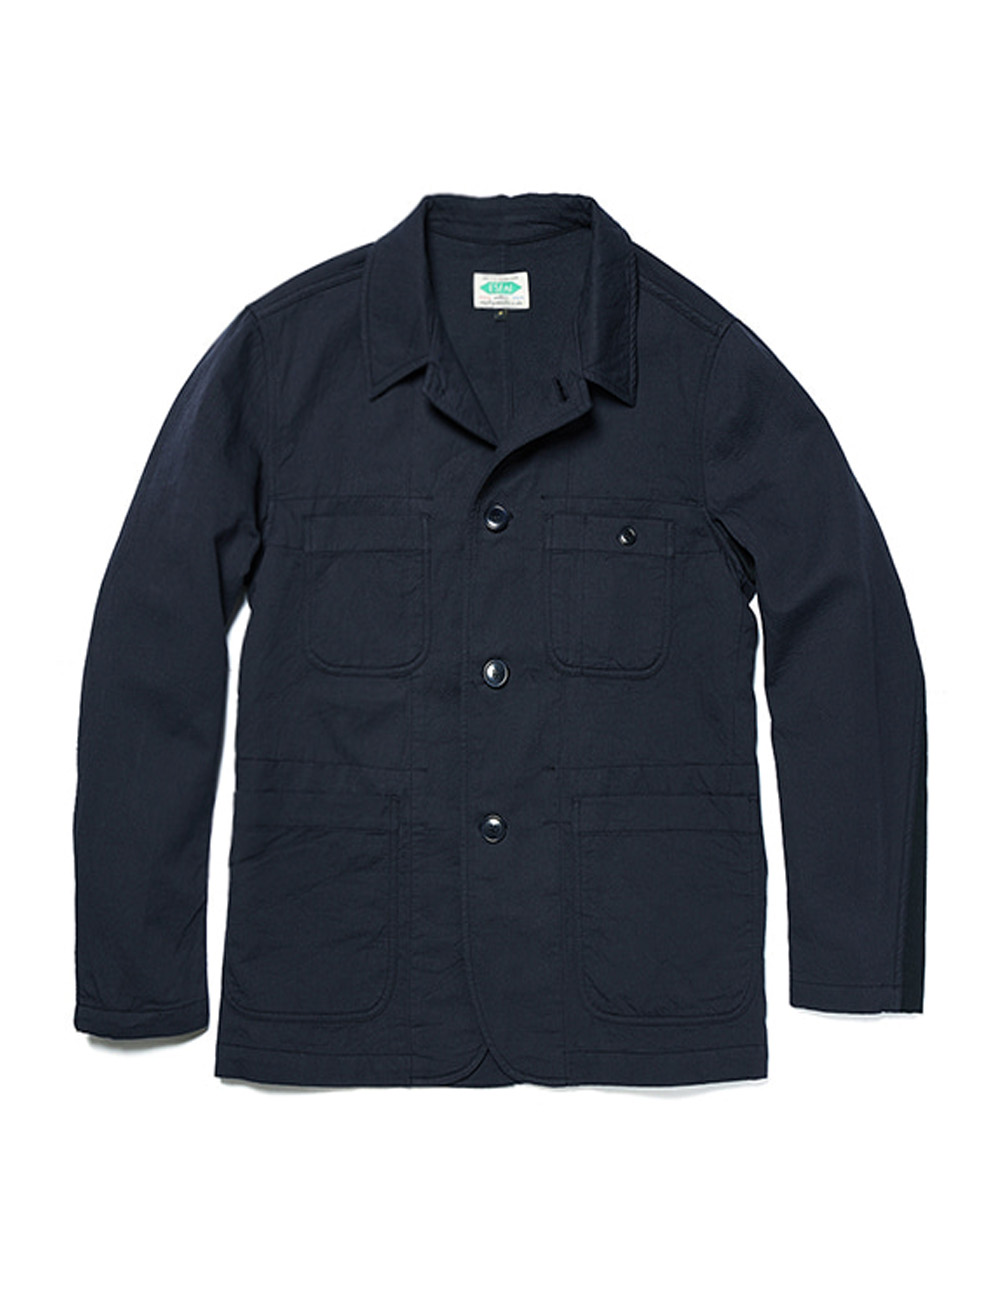 [ESFAI] UNCONSTRUCTED CASUAL JACKET (NAVY)